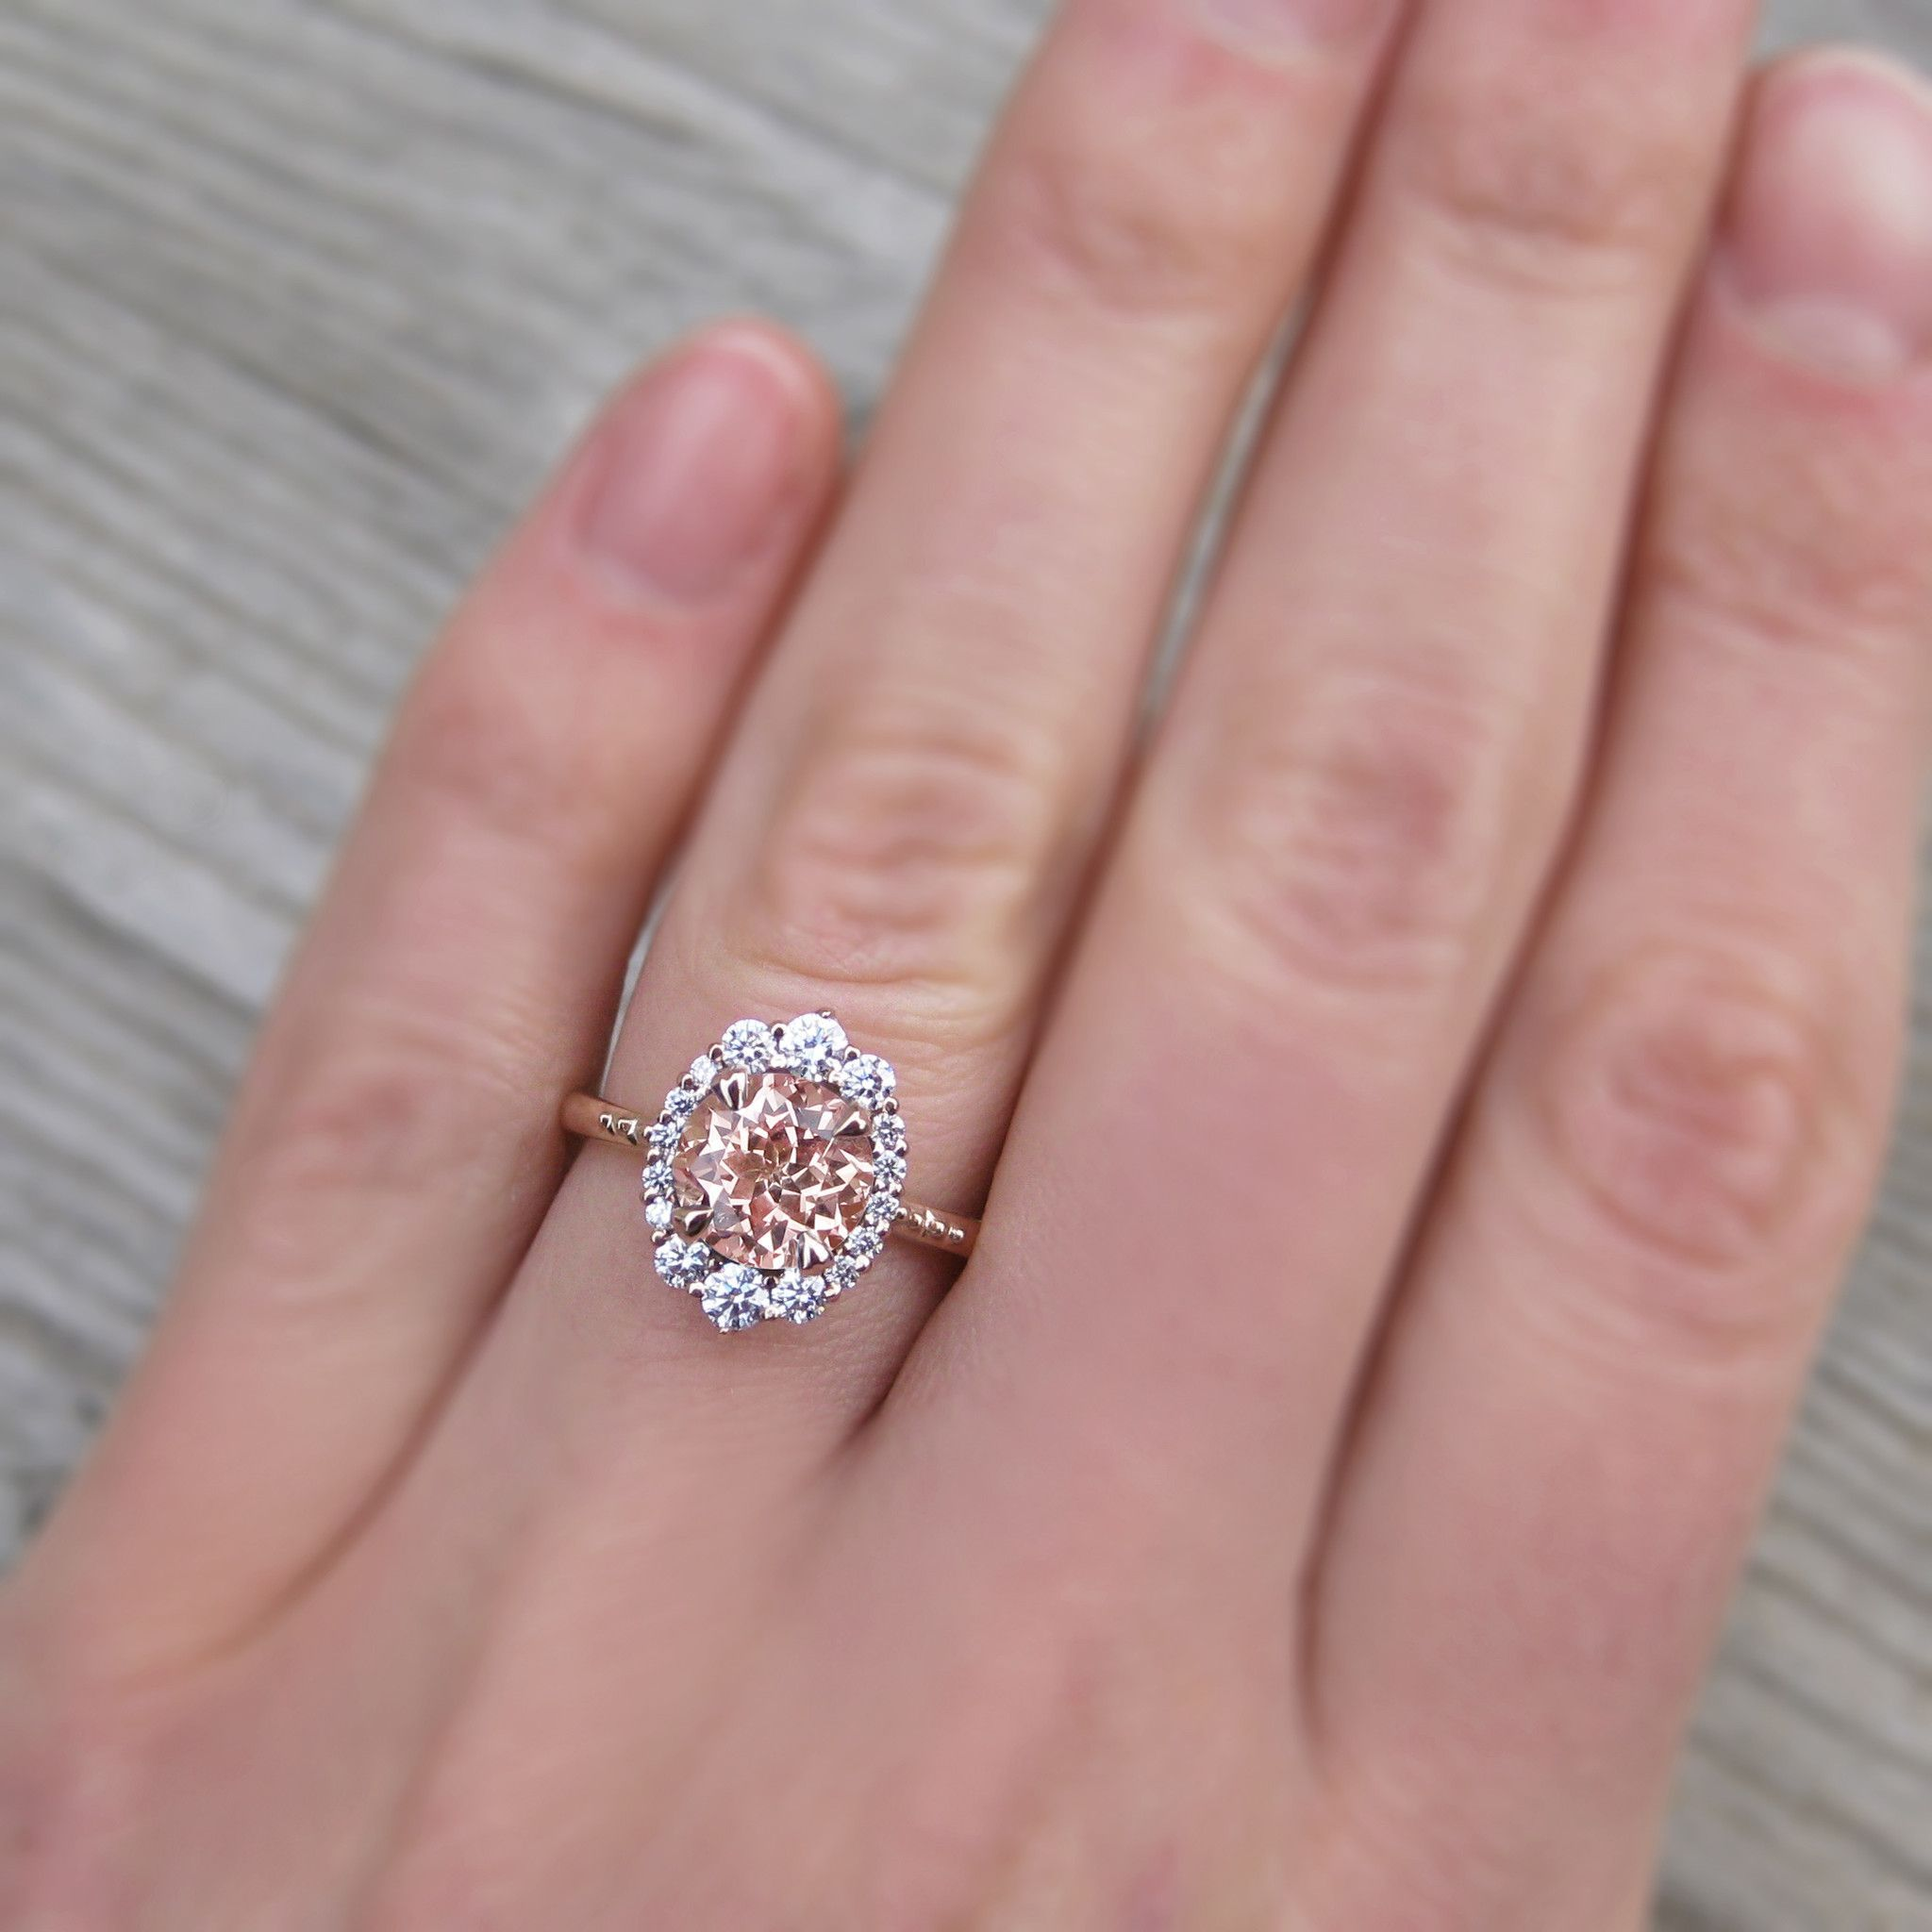 Peach Sapphire Engagement Ring with Diamond Halo (2.15ct) | The rock ...